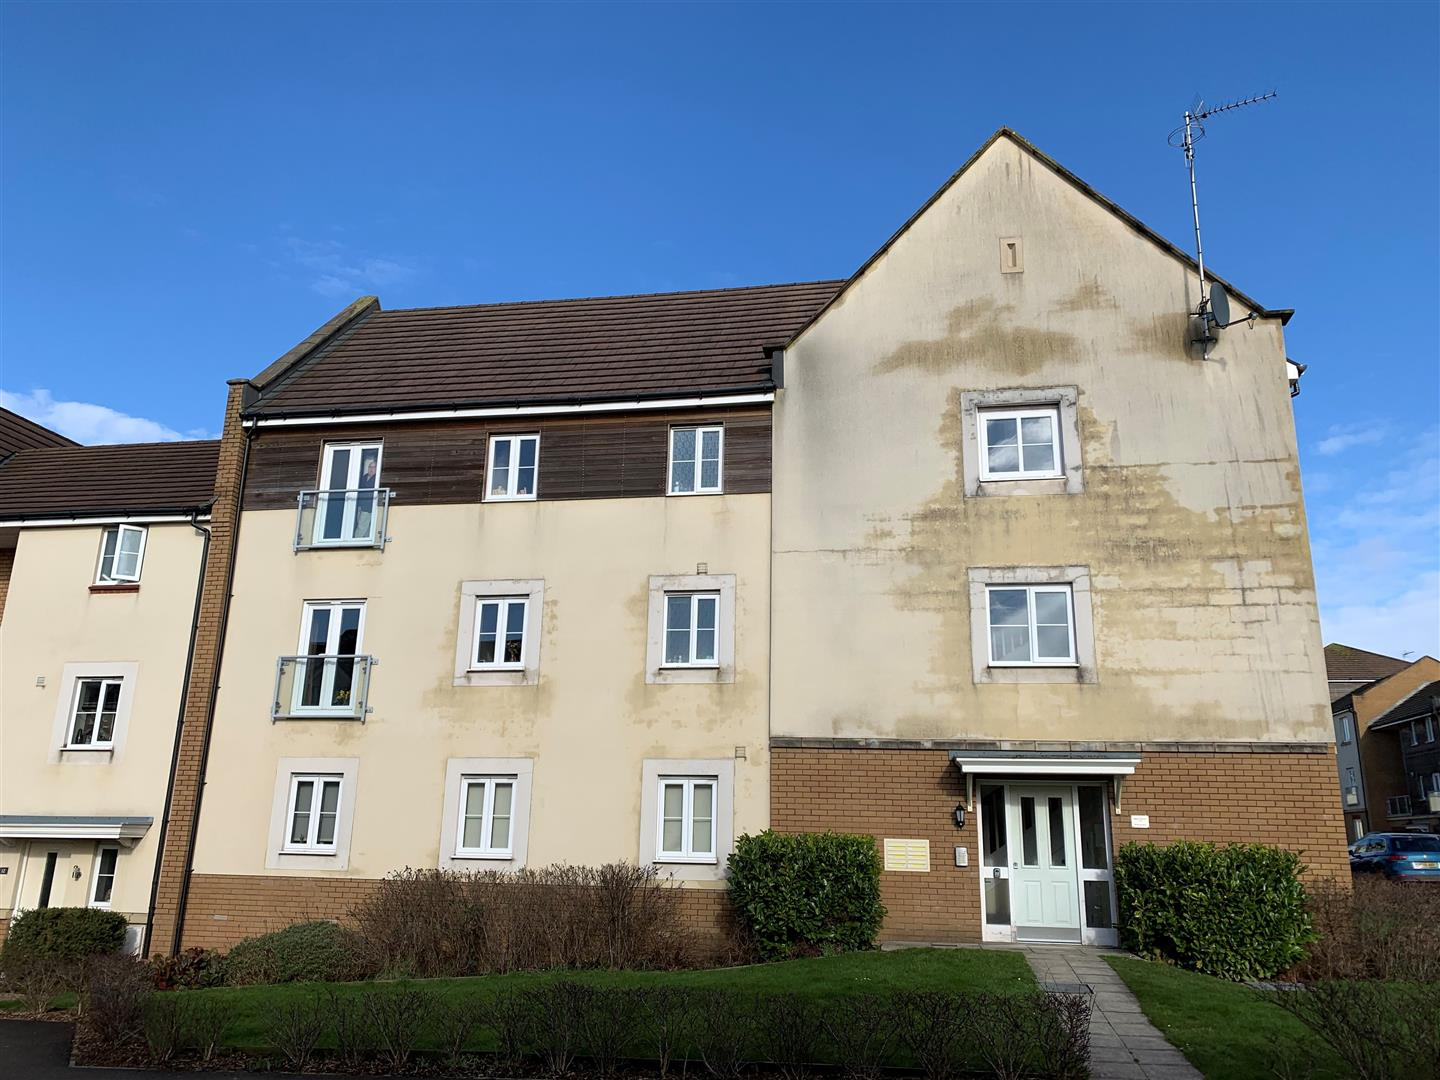 2 bed apartment to rent in Dorian Road, Bristol, BS7